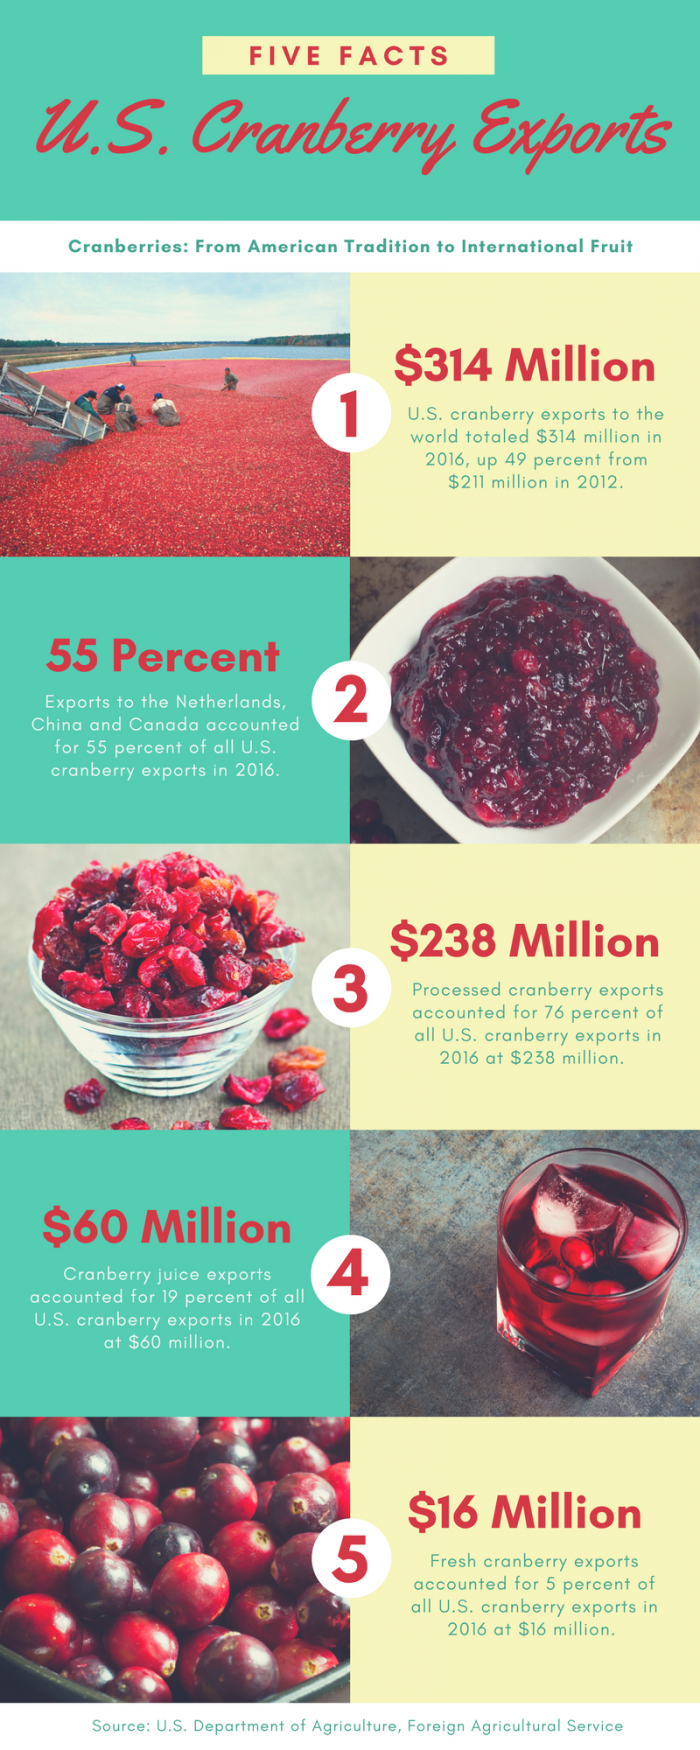 Graphic showing 5 key facts about U.S. cranberry exports which reached $314 million in 2016.